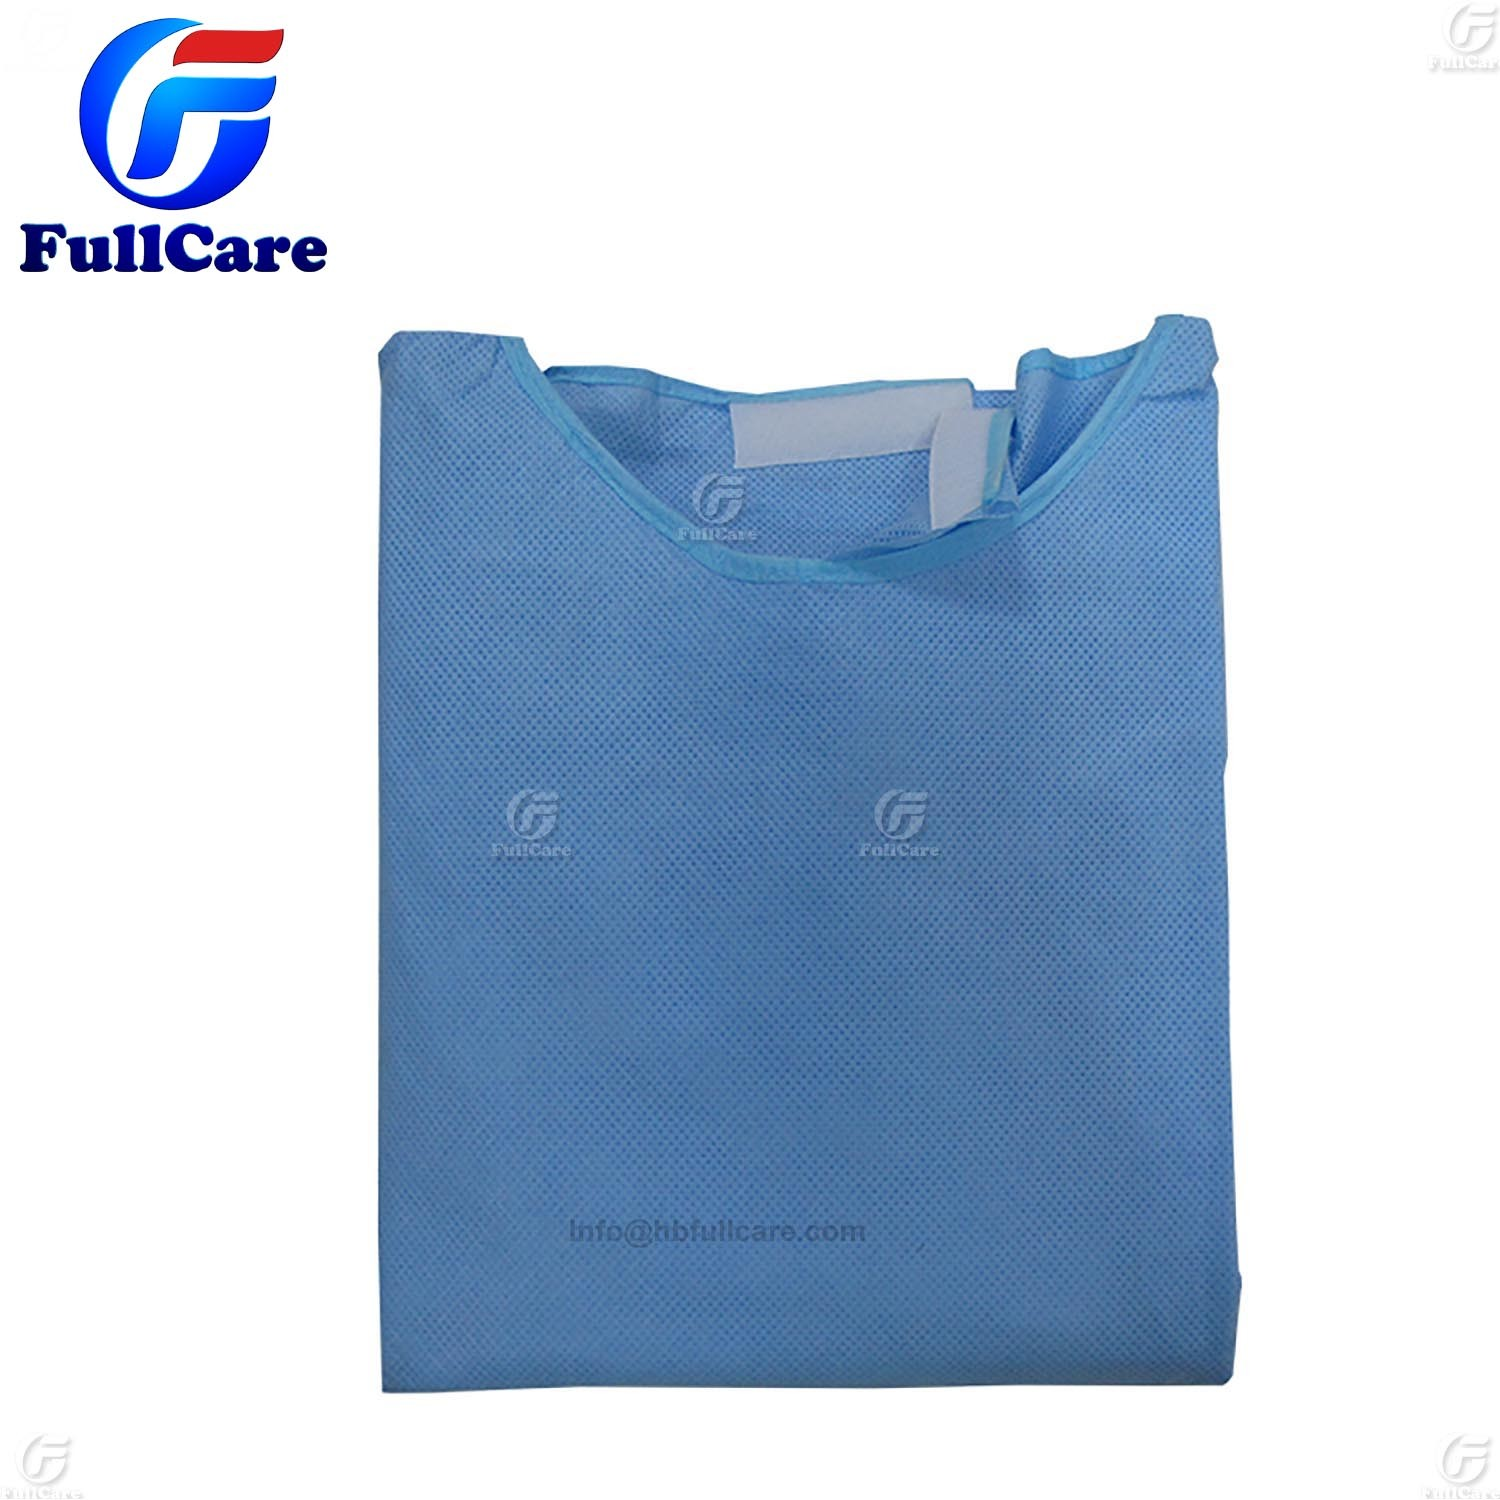 China Medical Product Work Clothes Sterile Surgical Gown Plastic ...